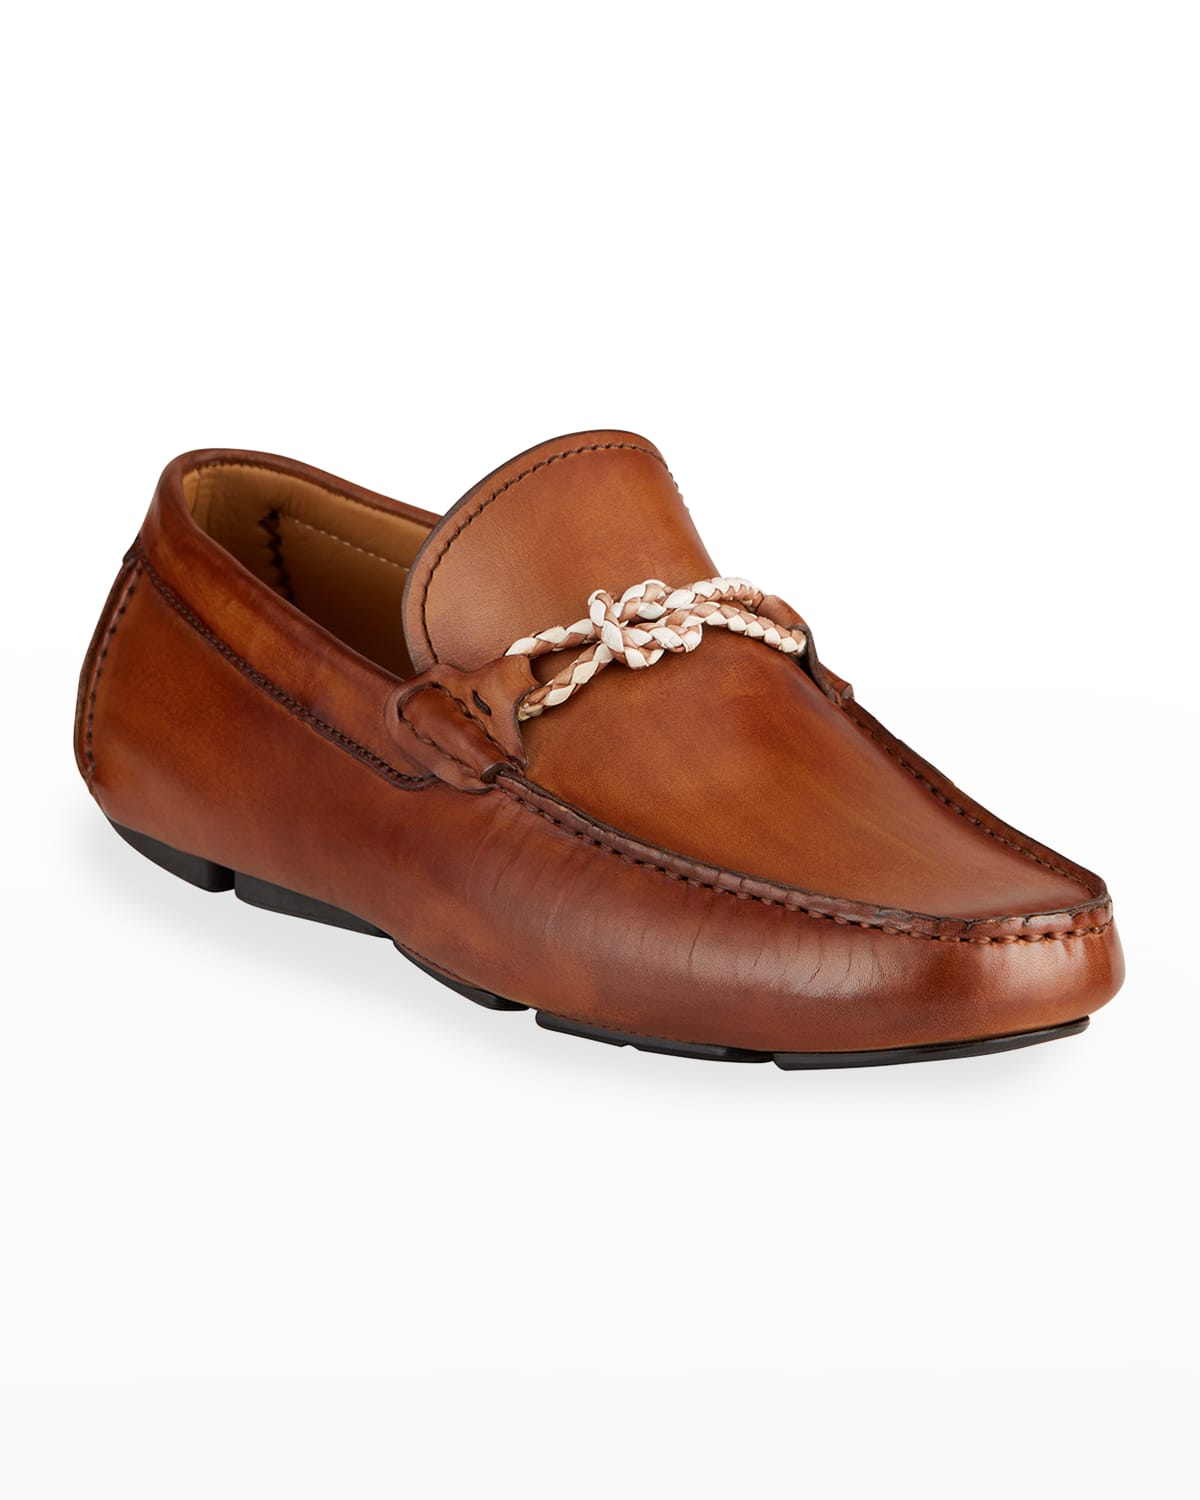 Men's Leather Drivers w/ Woven Strap